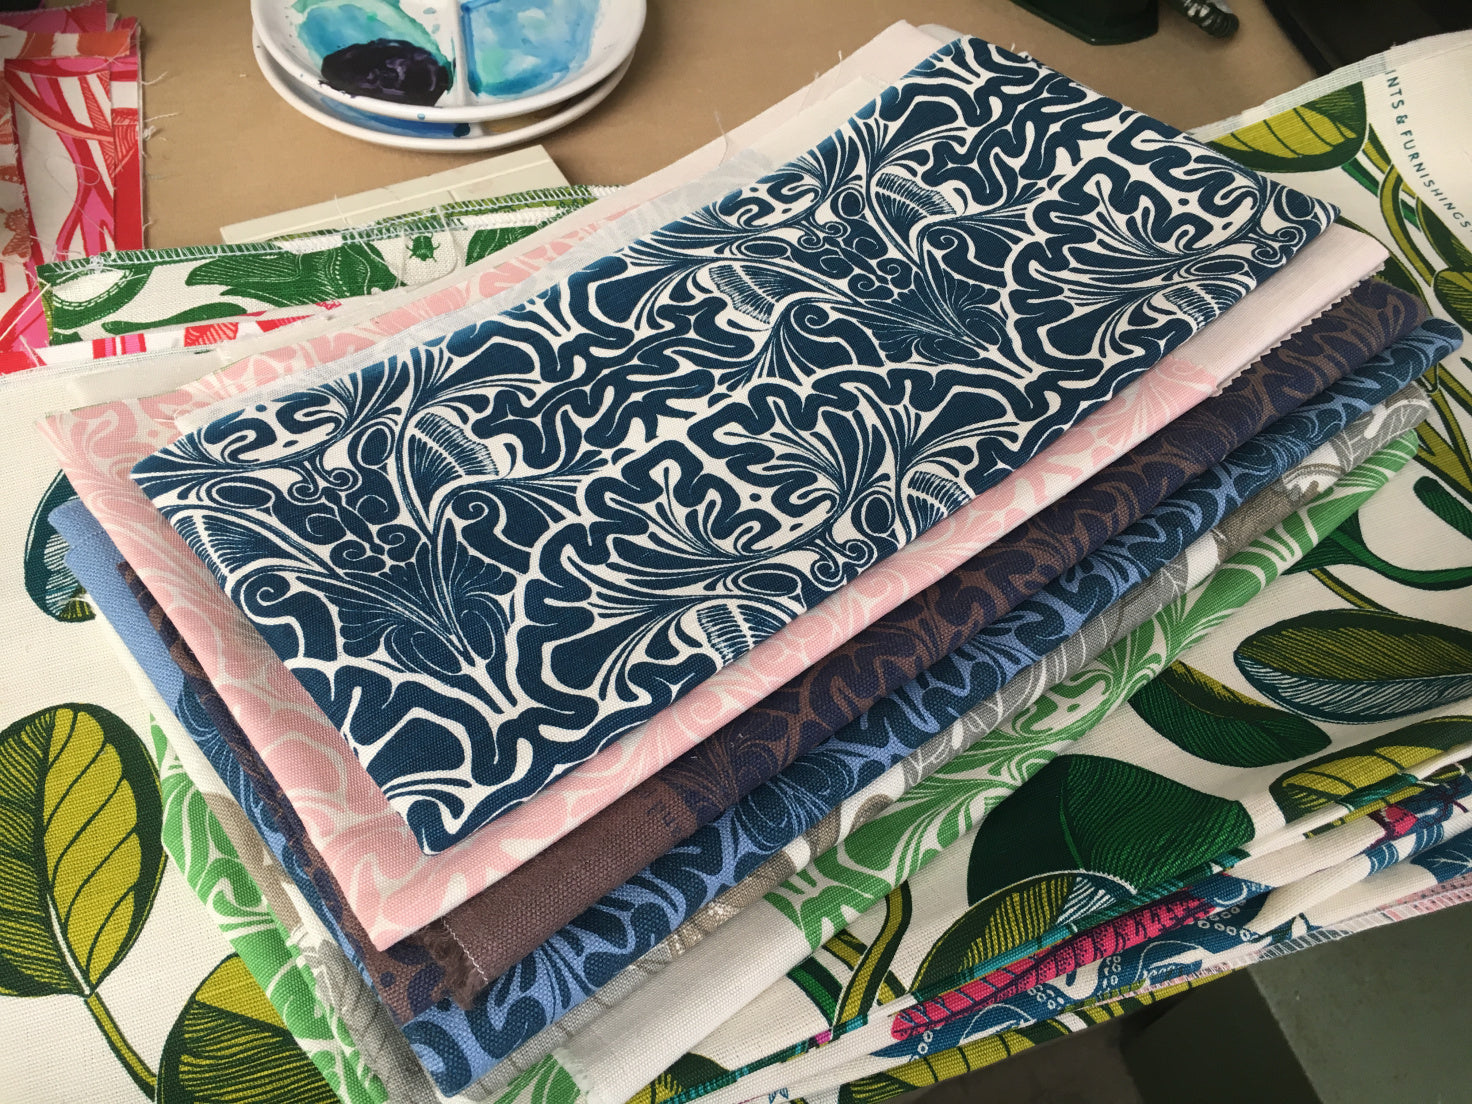 Fanny Shorter's design work, printed onto fabric